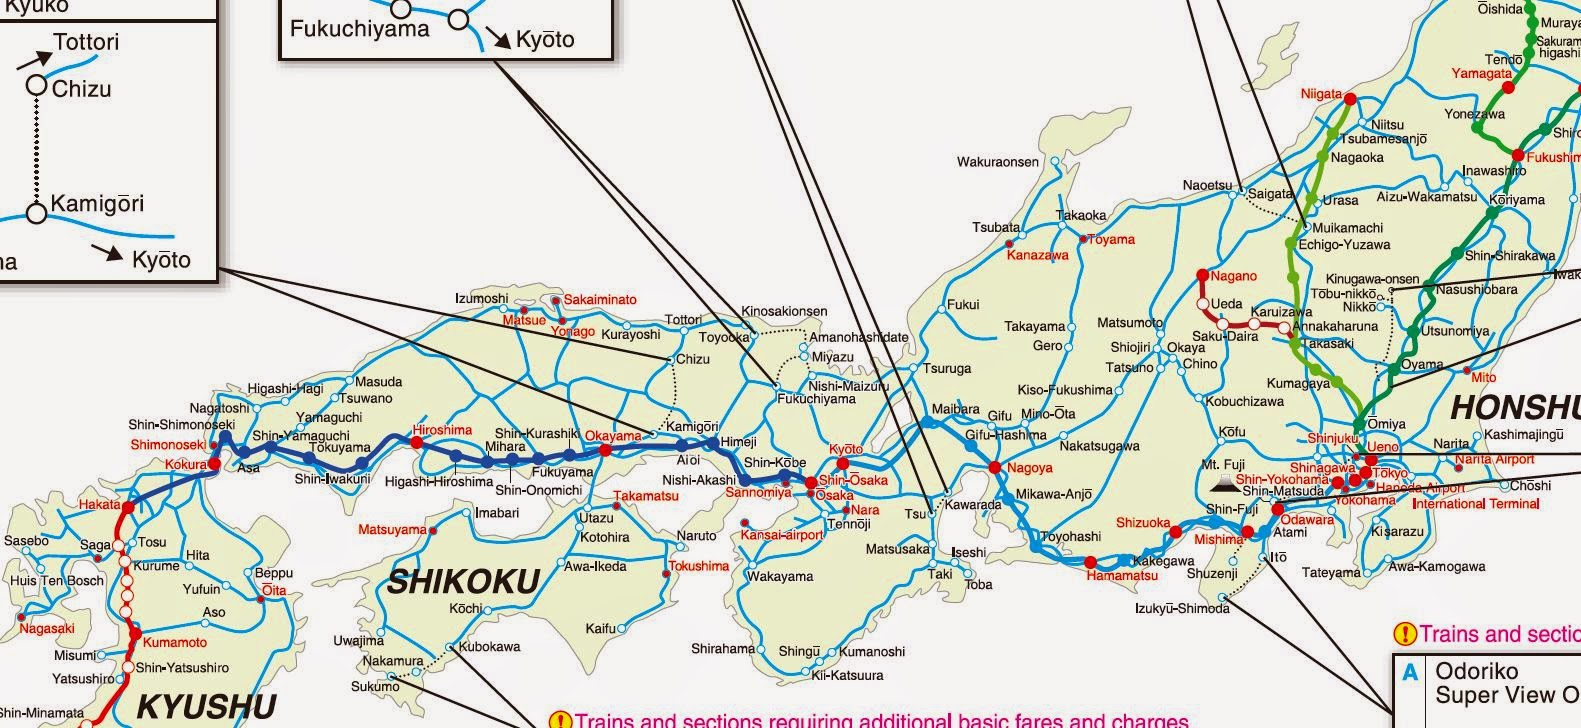 Japan Rail Pass Uk Map - Japan uk map